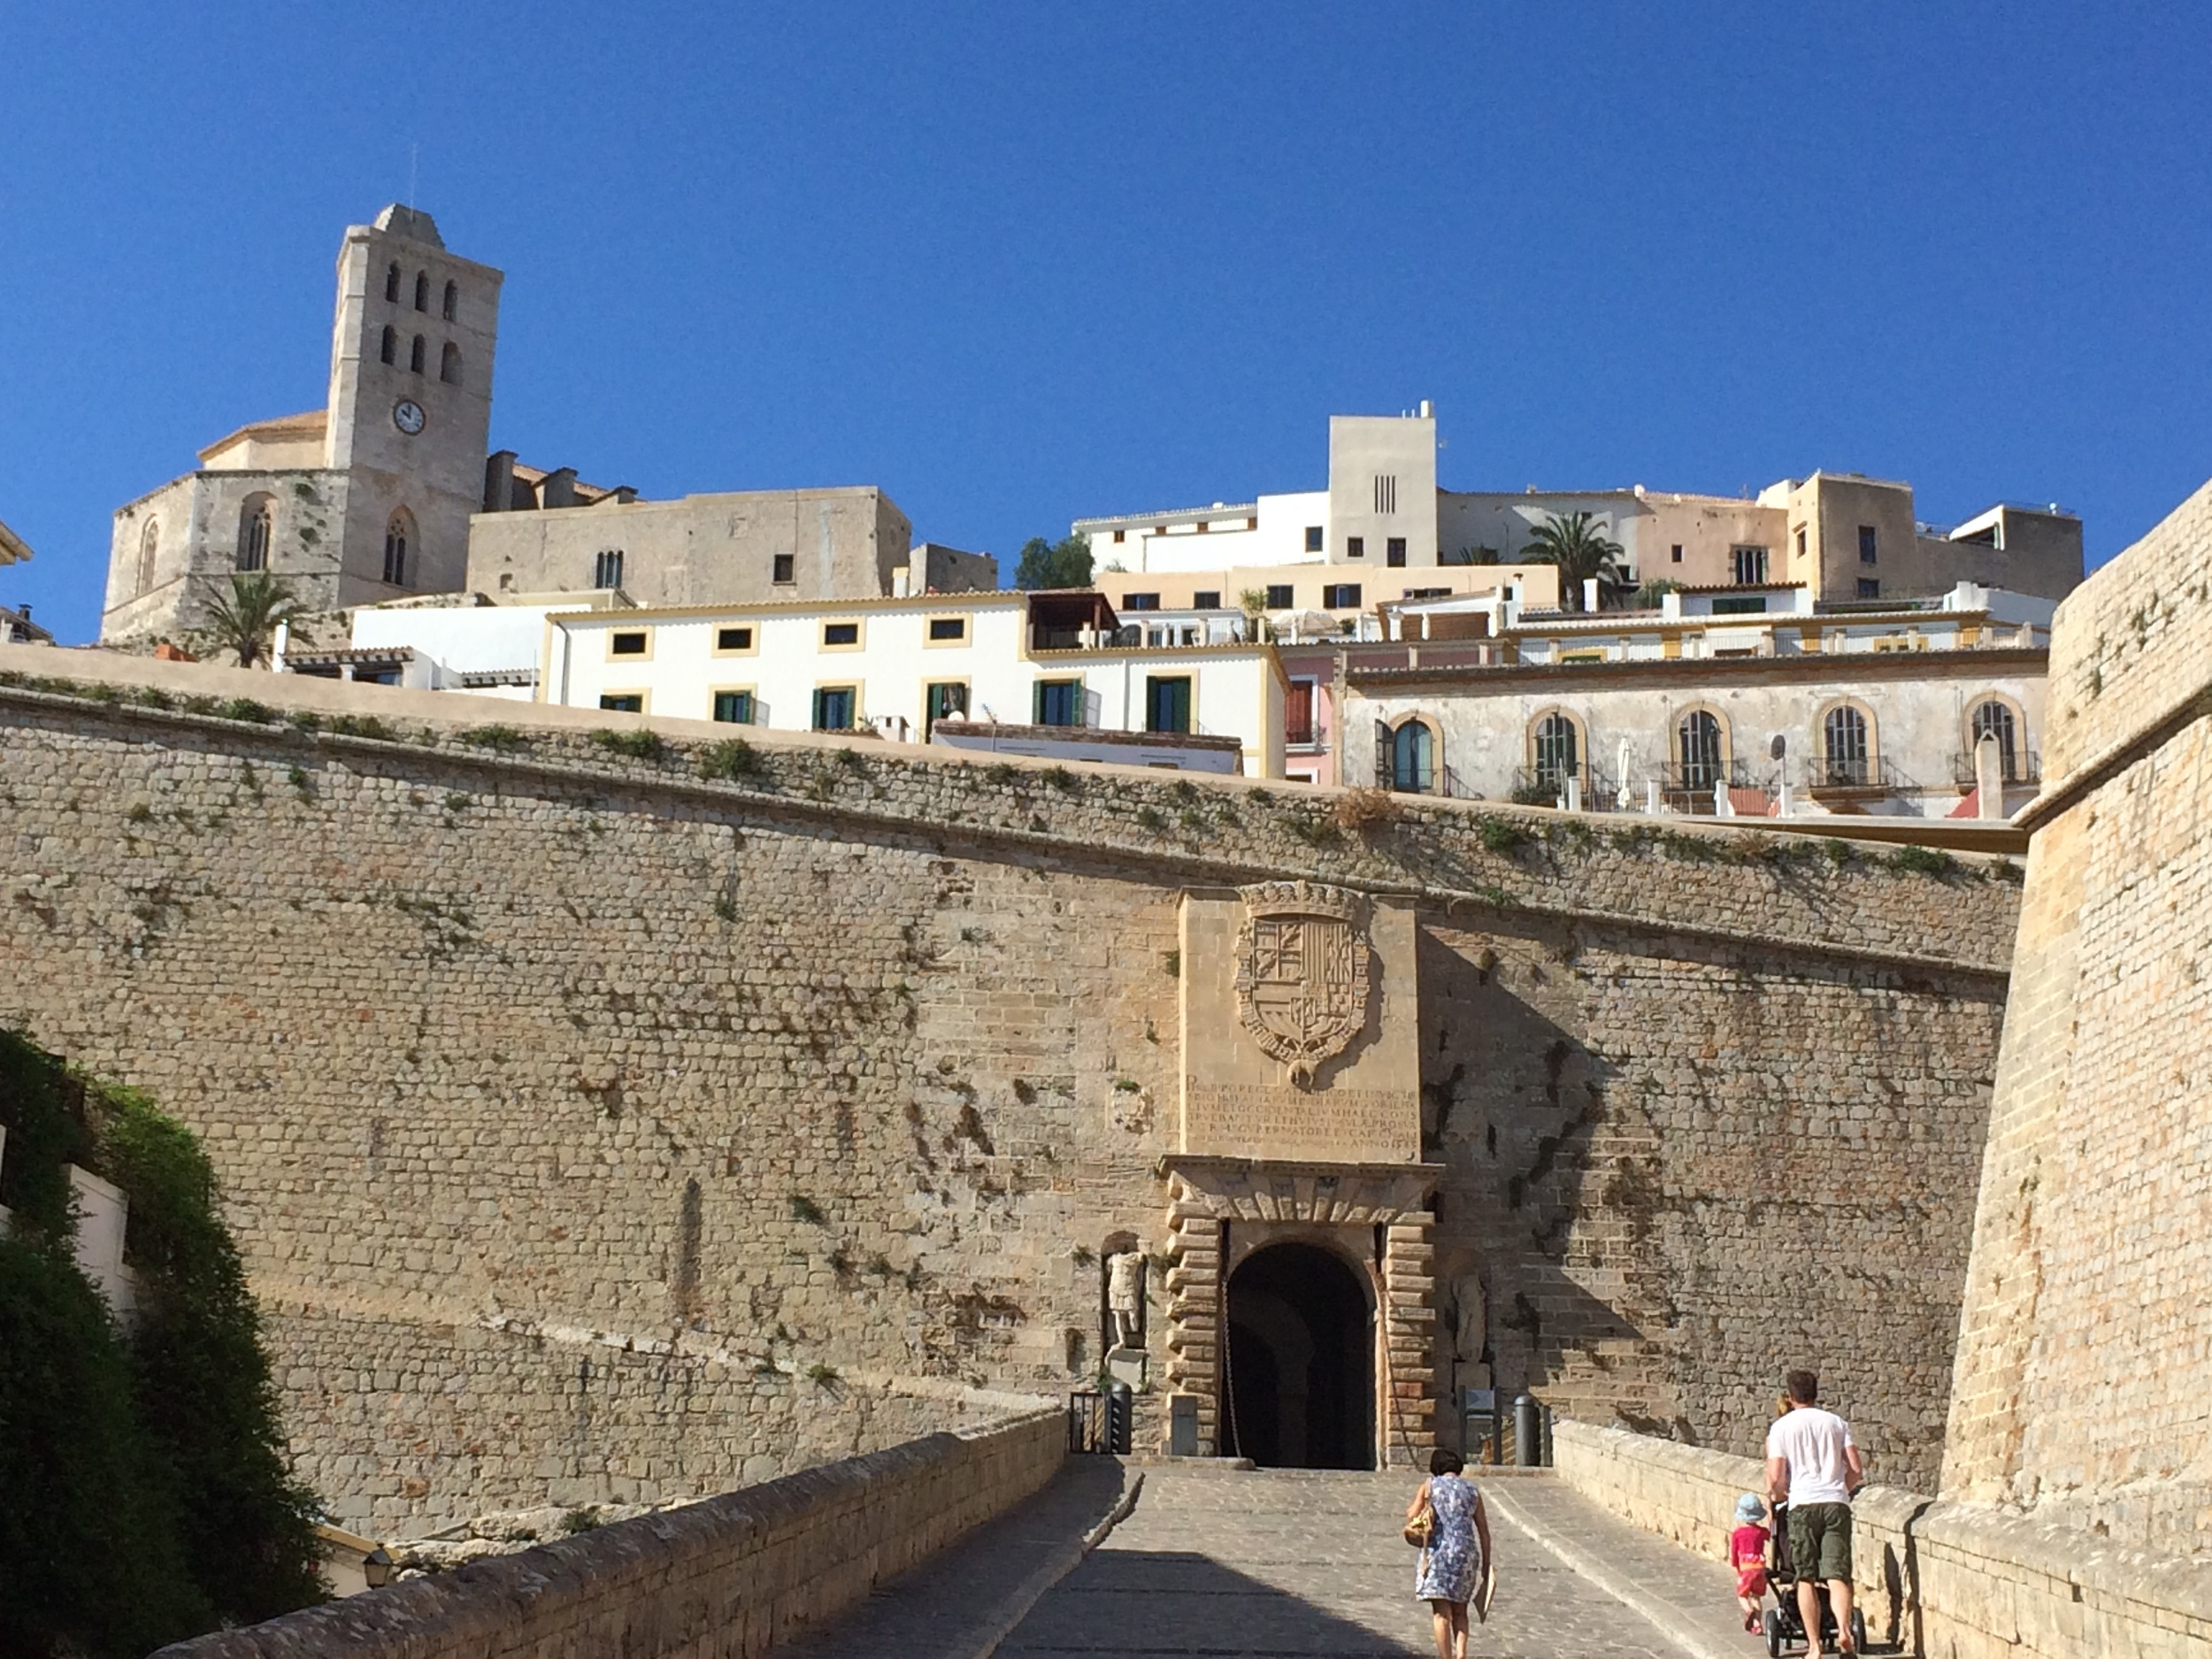 The main entrance of Dalt Vila.